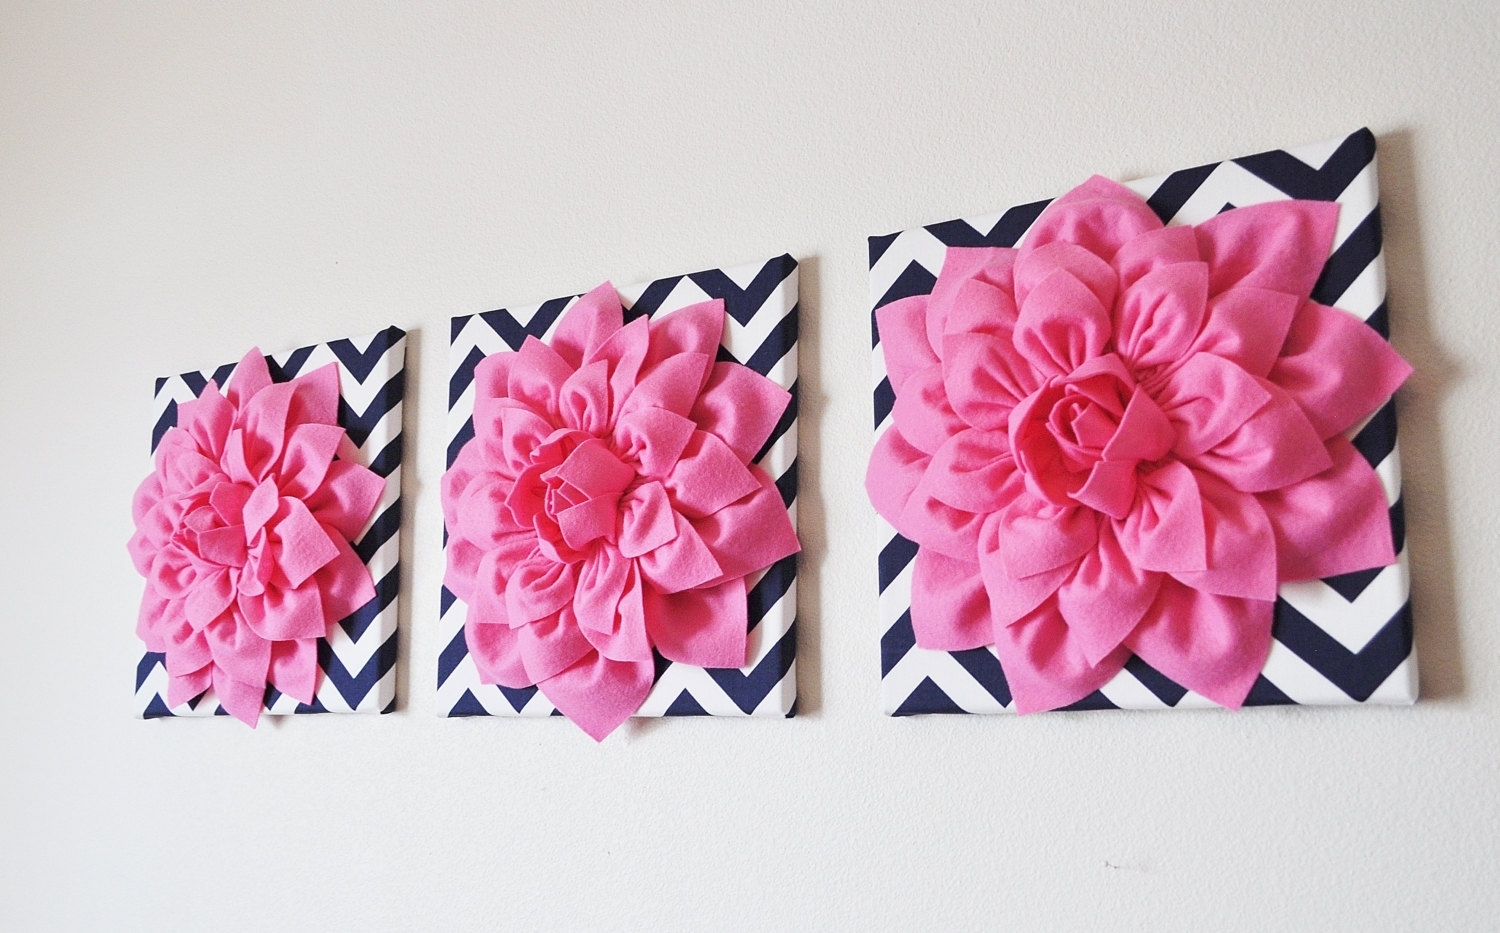 Pink Wall Decor - Www.grisly pertaining to Pink Wall Art (Image 19 of 20)